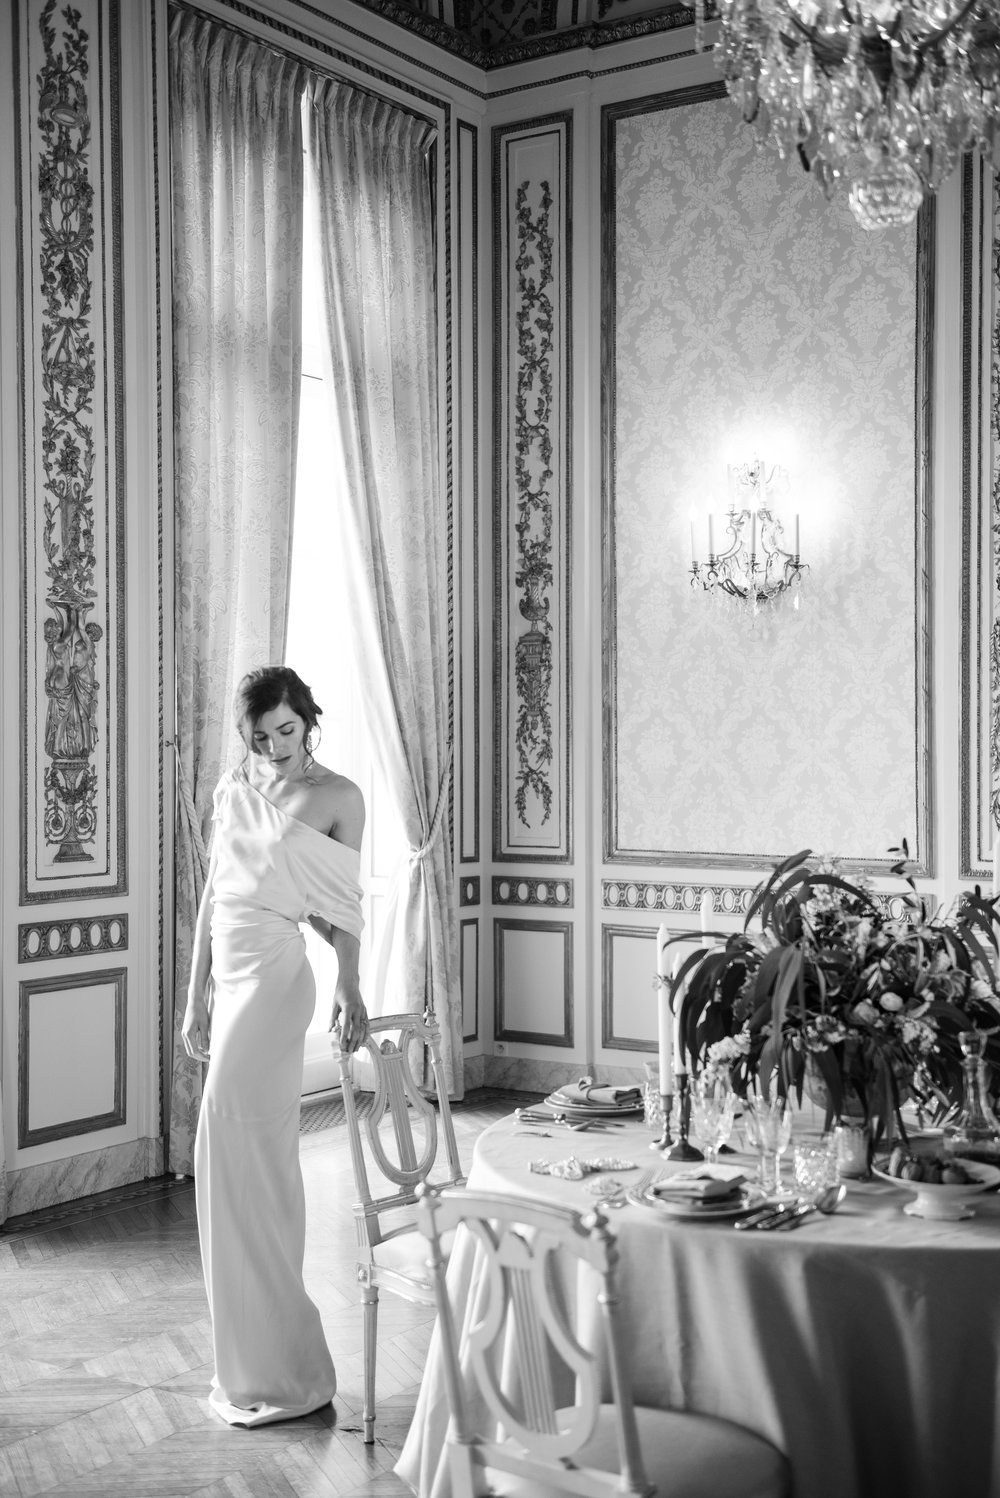 Sylvie-Gil-film-destination-wedding-photography-pavillon-de-la-musique-paris-france-editorial-vintage-classic-